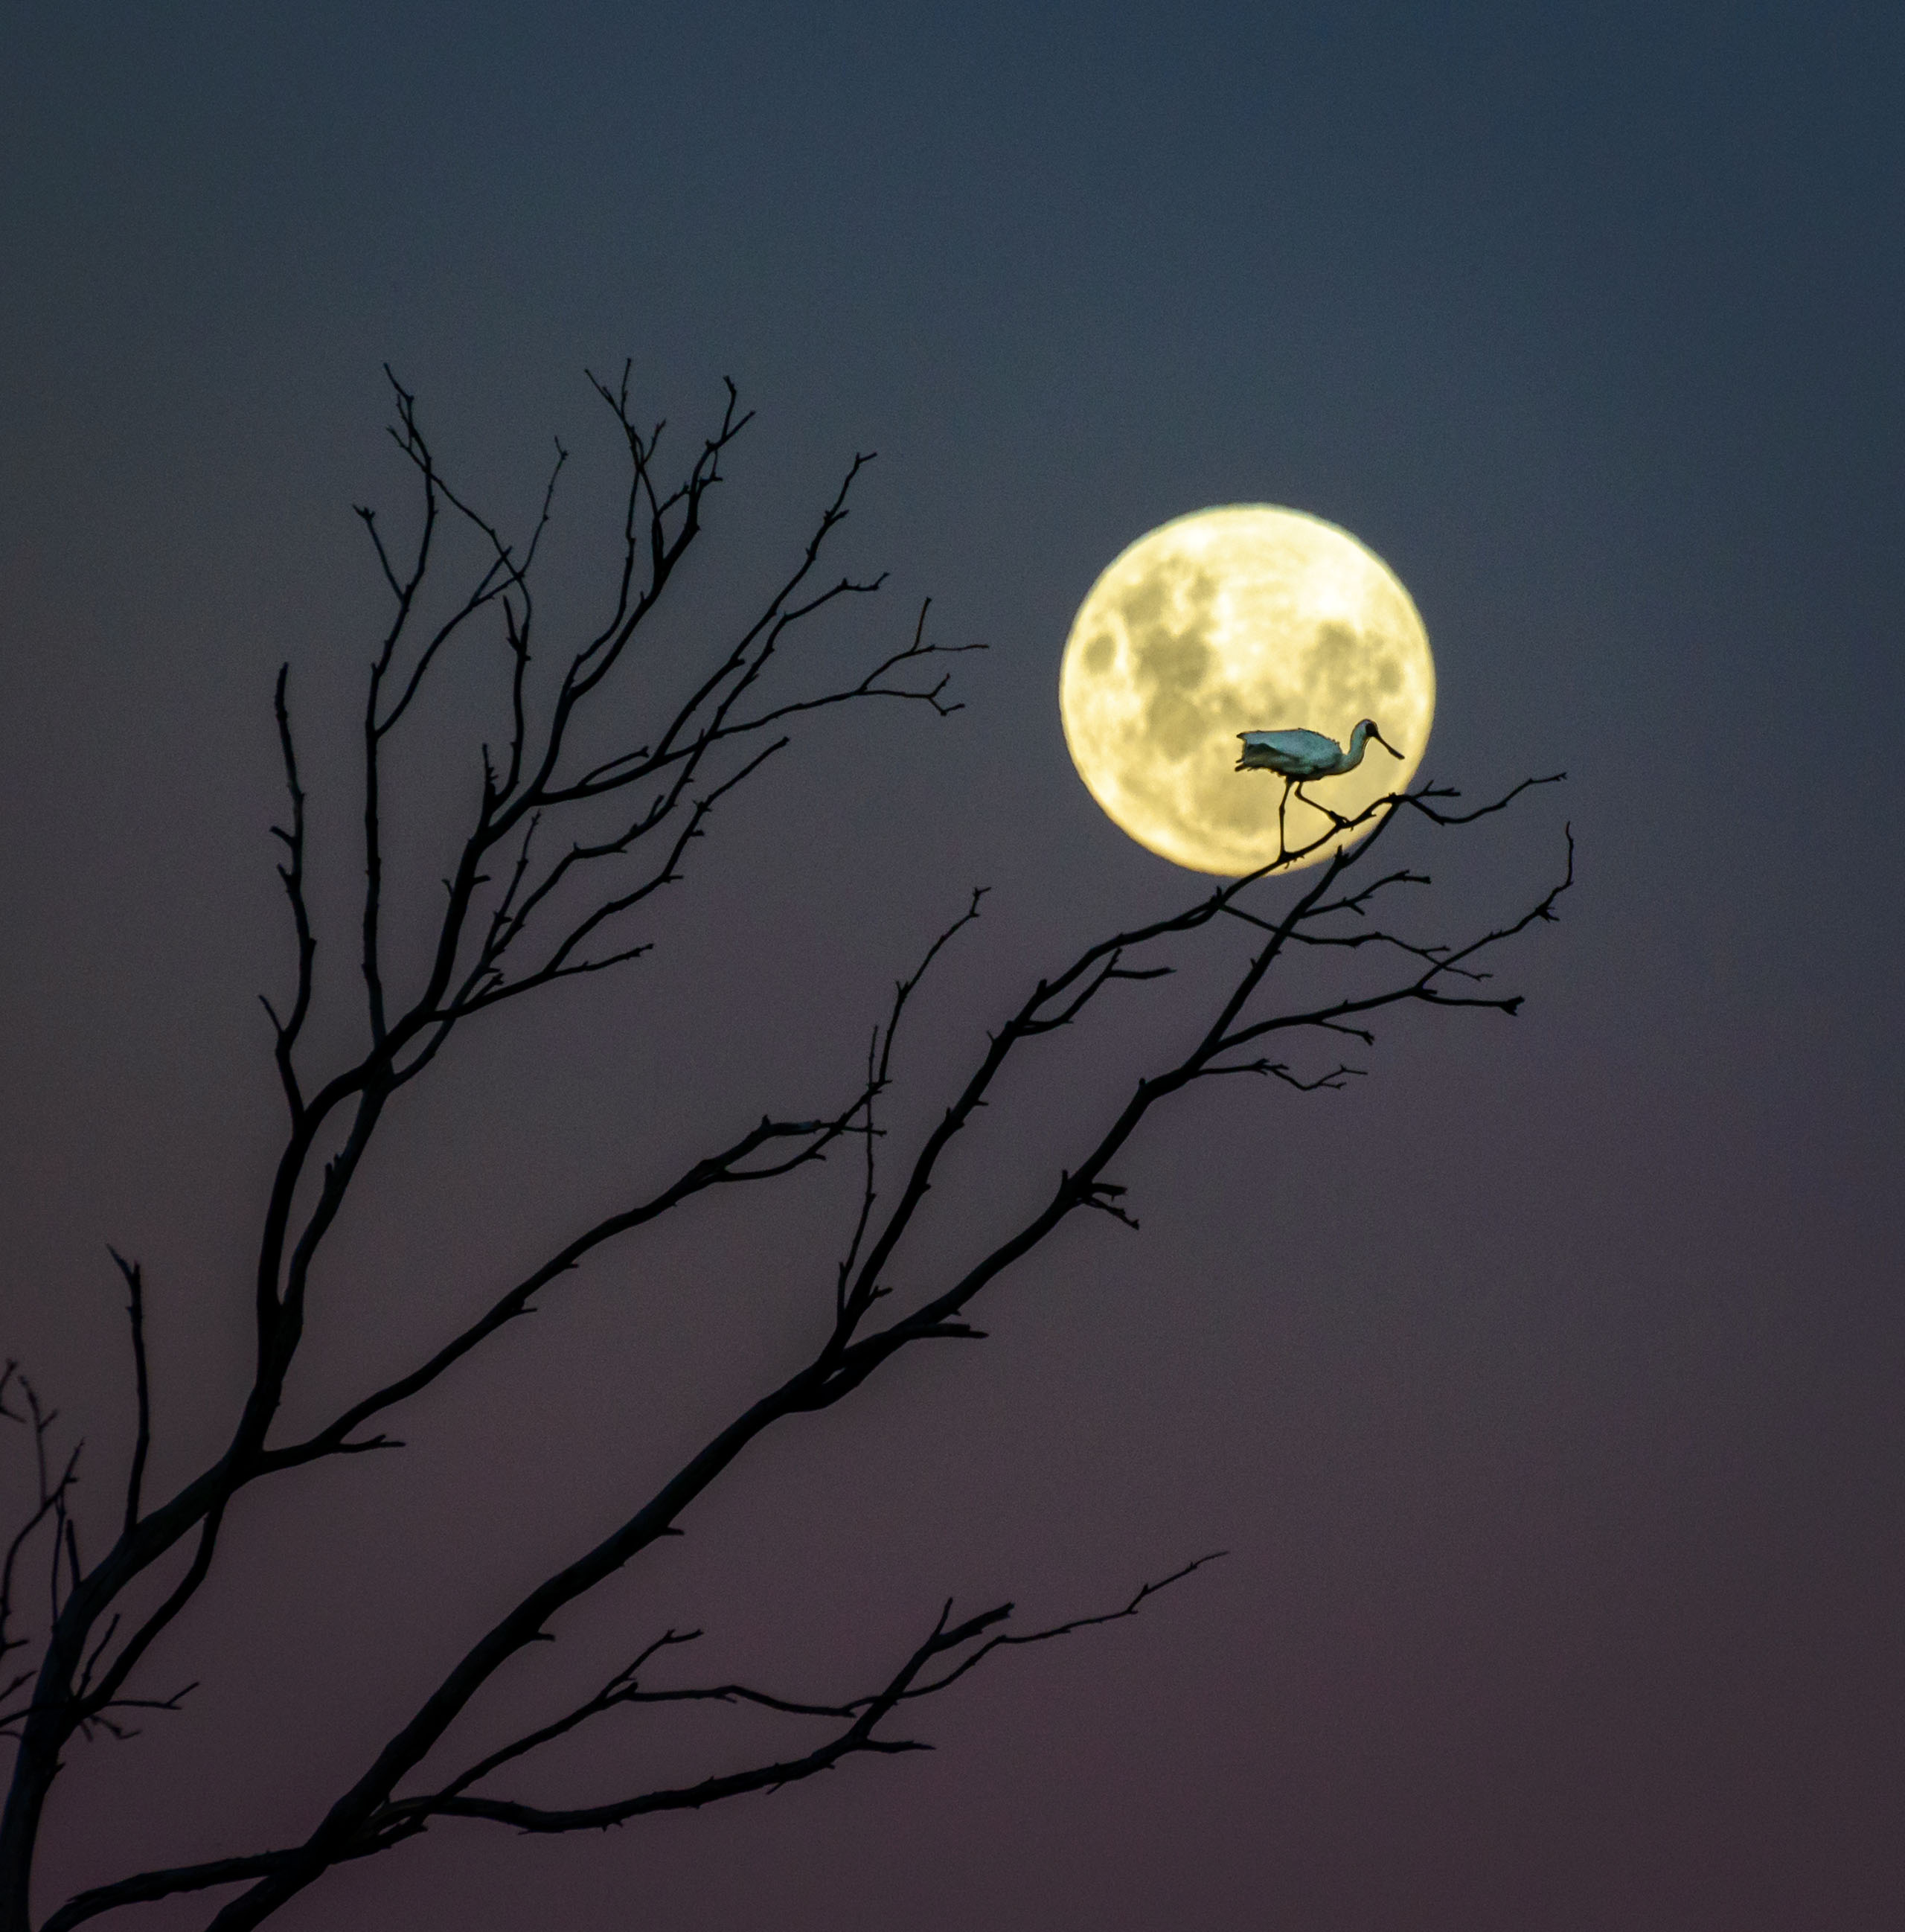 A Royal Spoonbill sits atop of a branch, basking in the glow of the nearly full moon in Hawke's Bay, New Zealand.